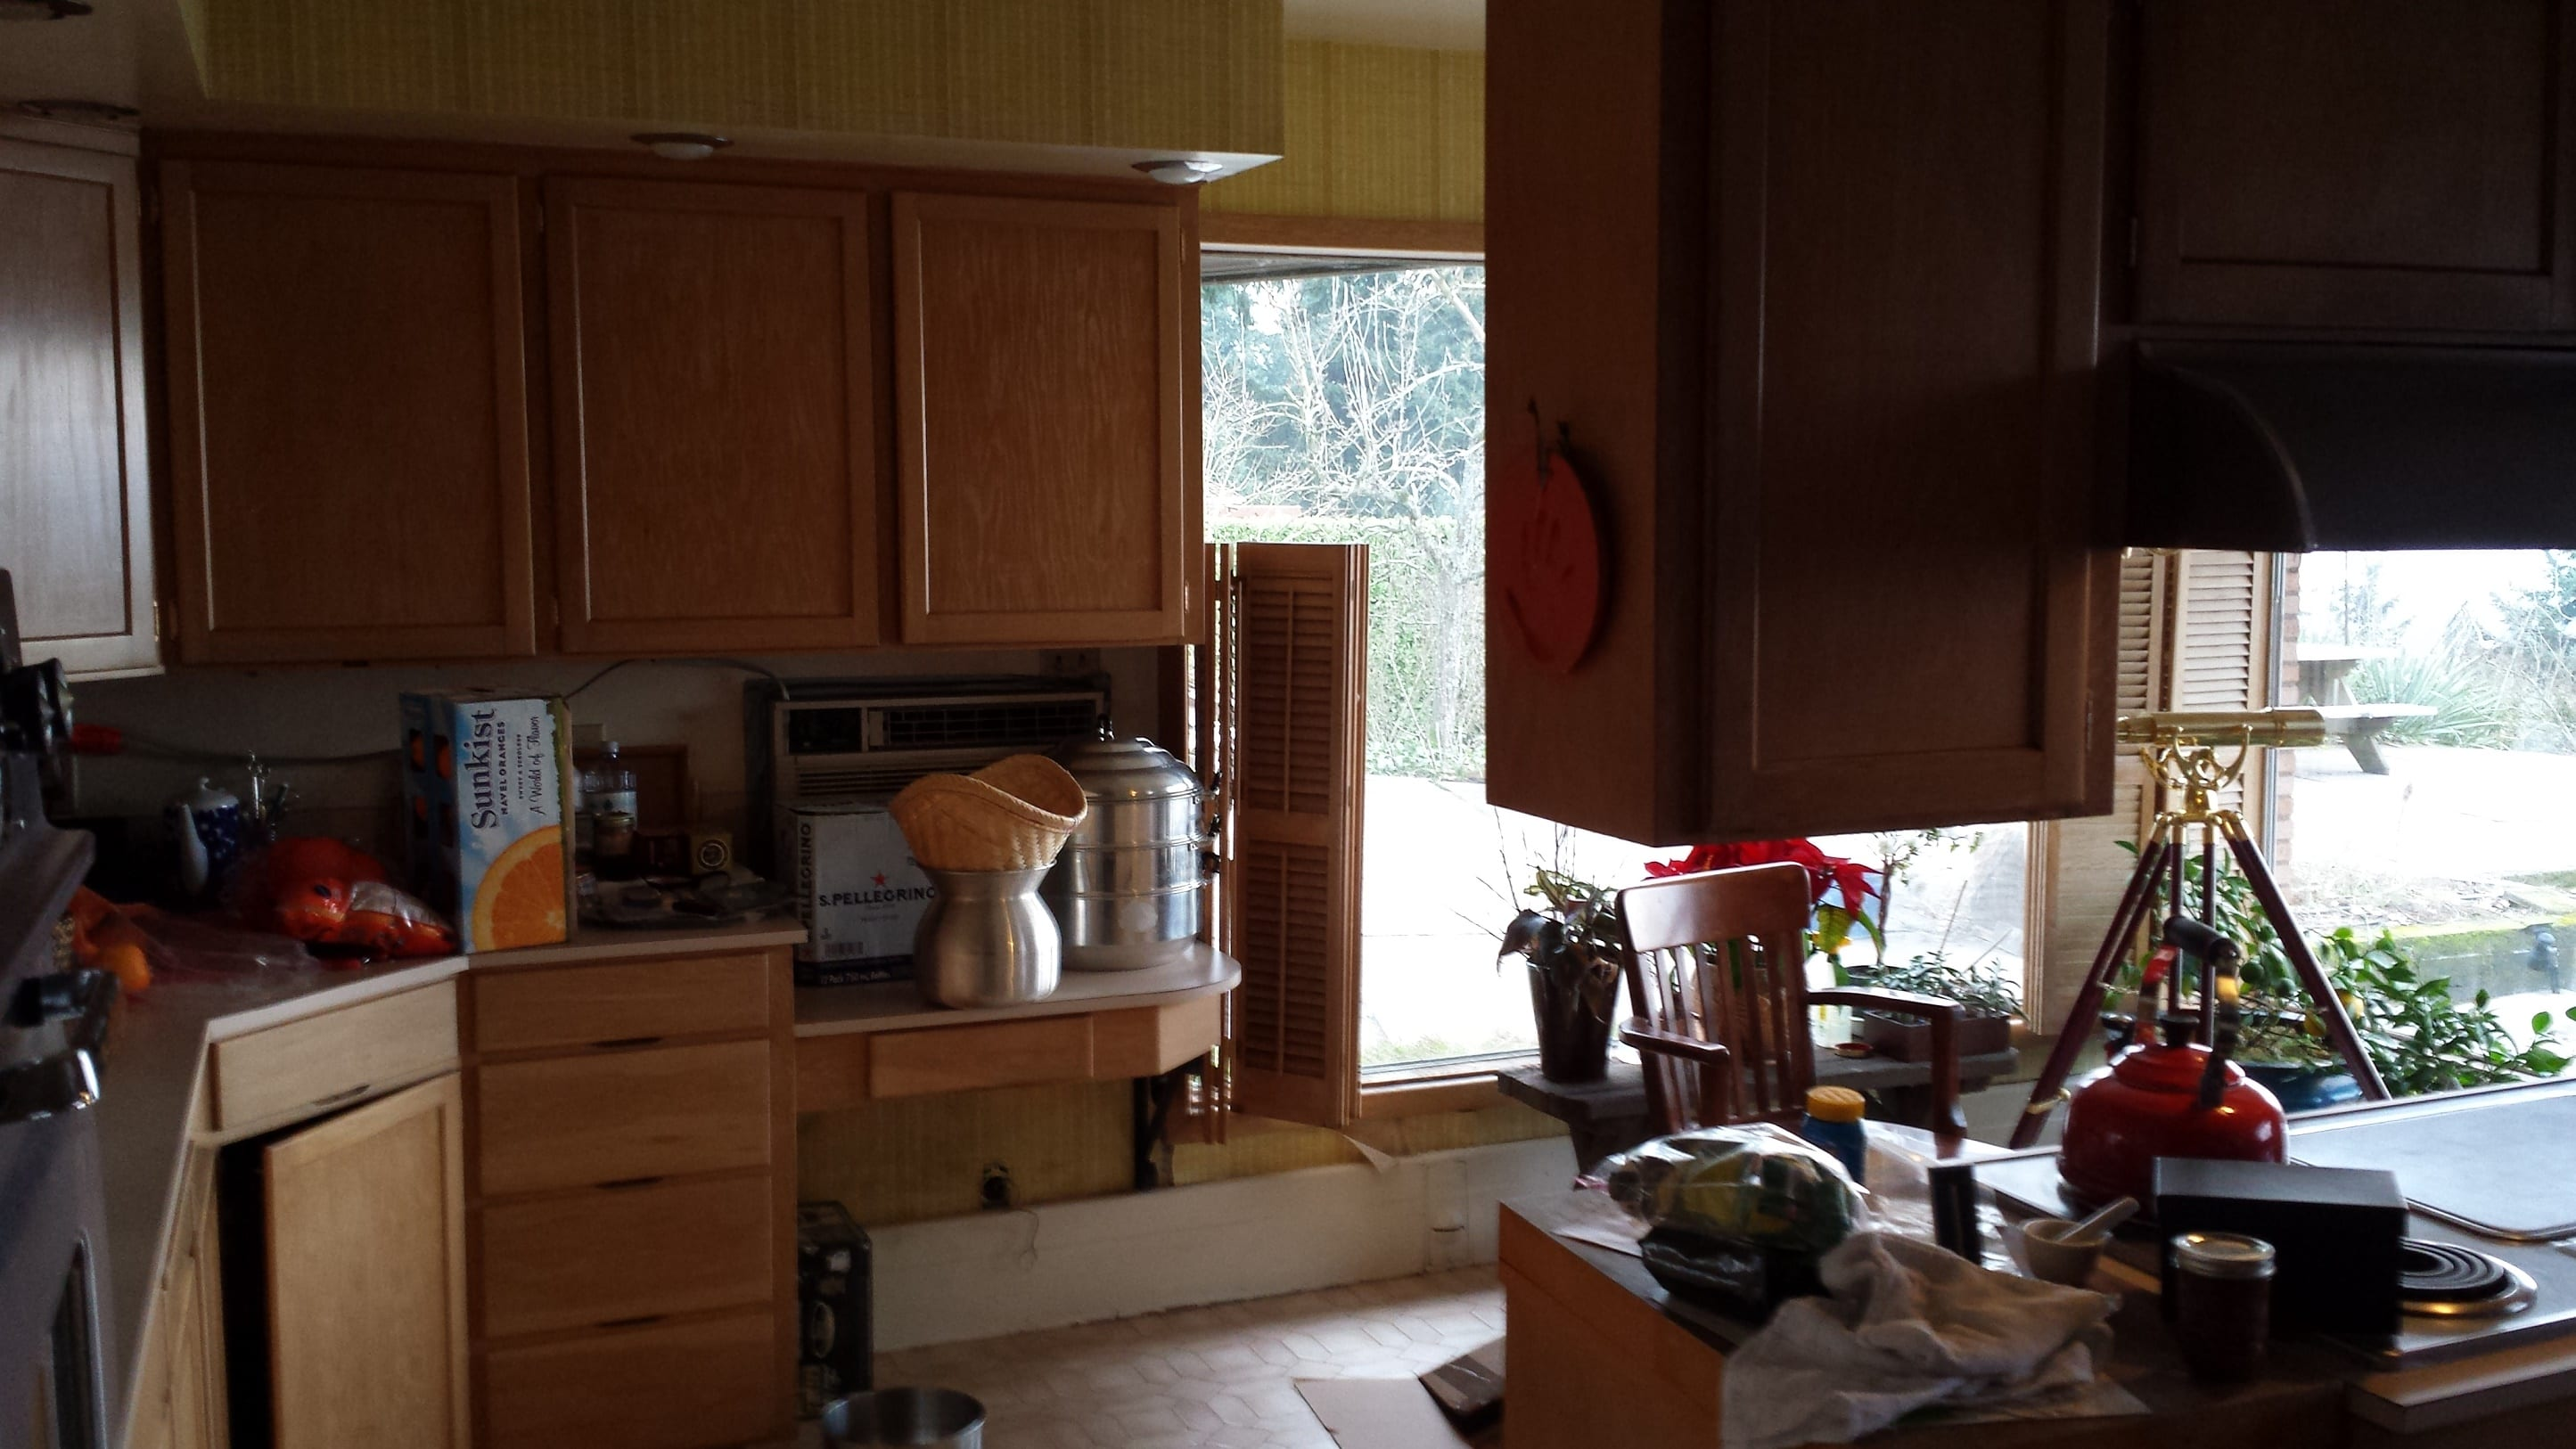 heights kitchen before